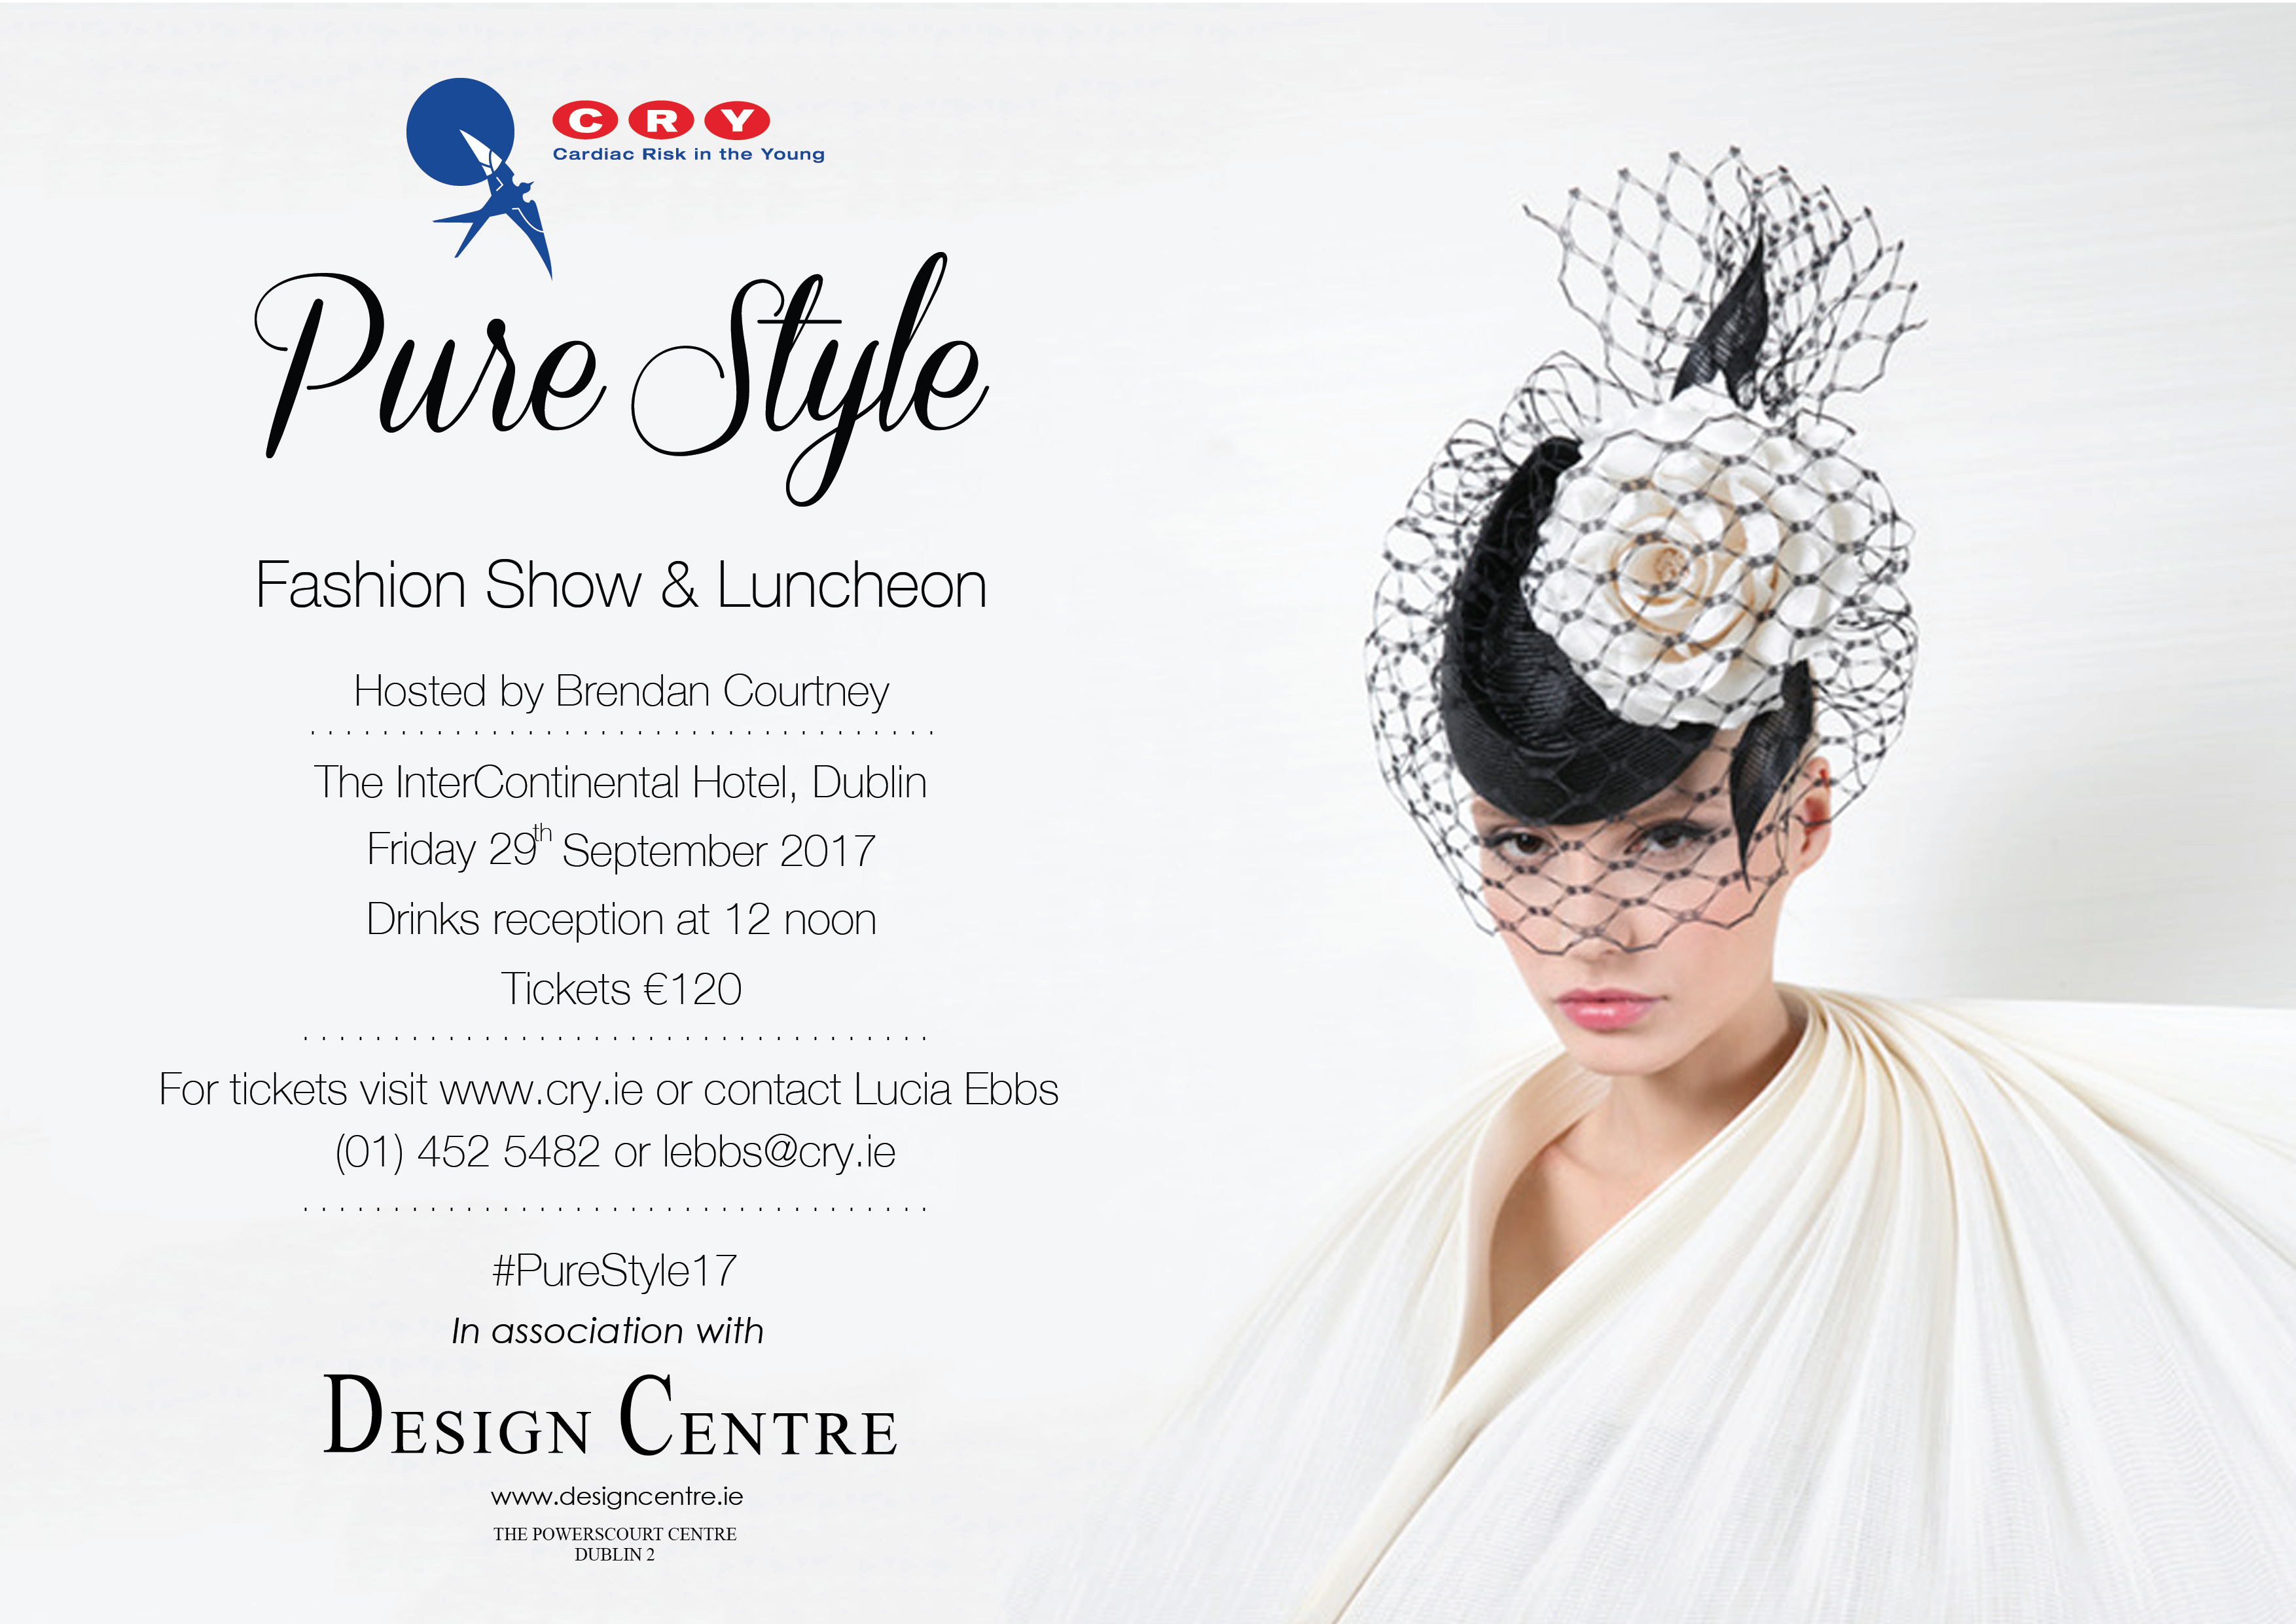 PureStyle17